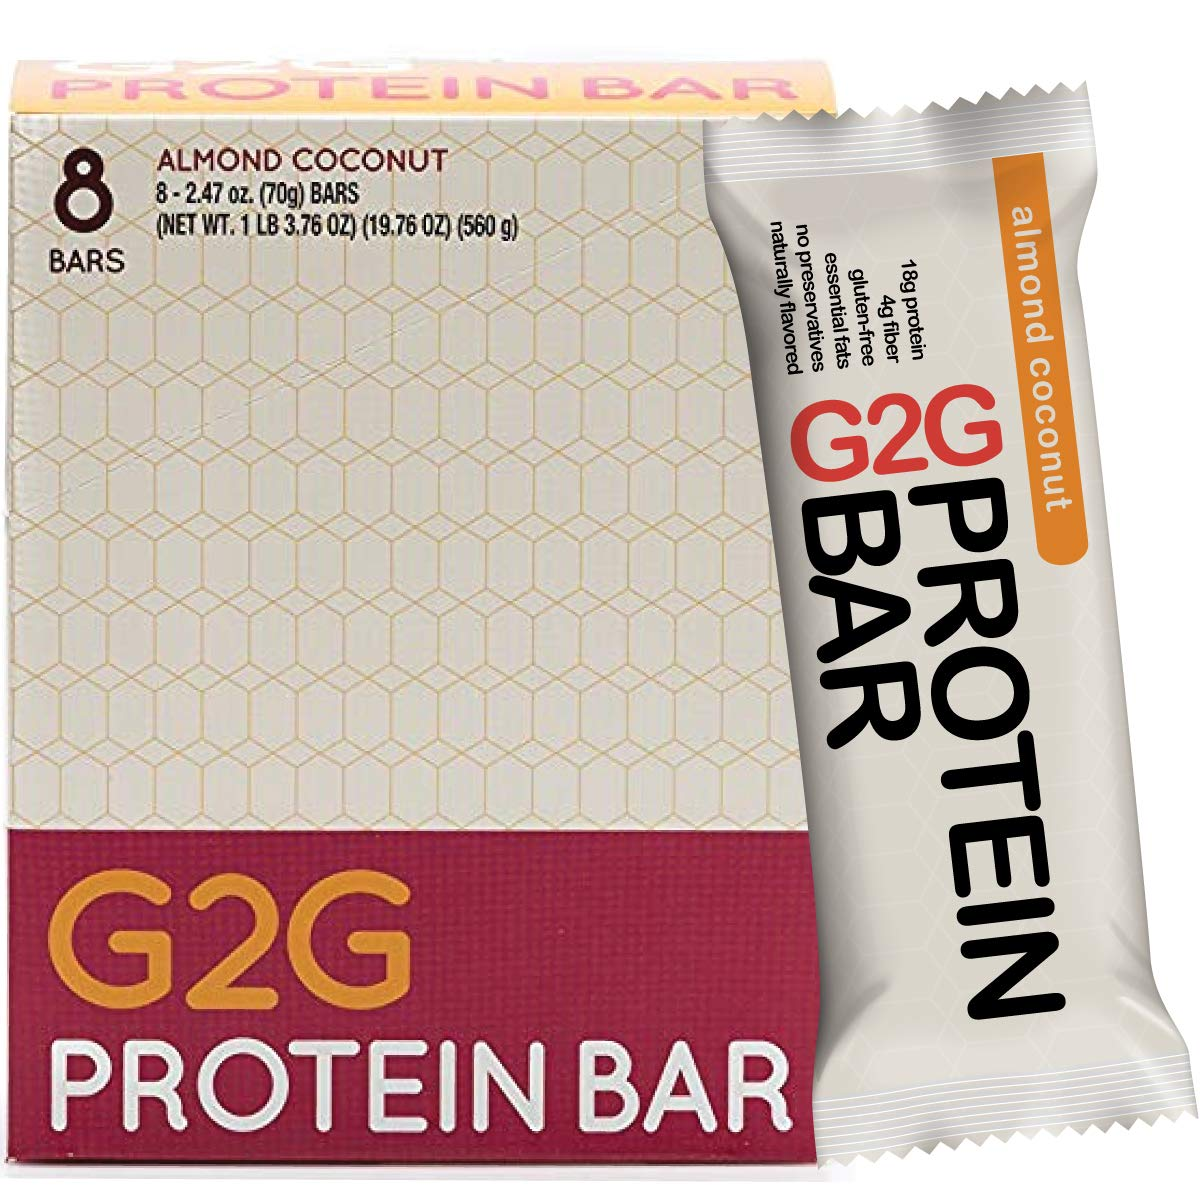 G2G Protein Bar, Almond Coconut Protein Bar, 8 Count Box by G2G Protein Bar